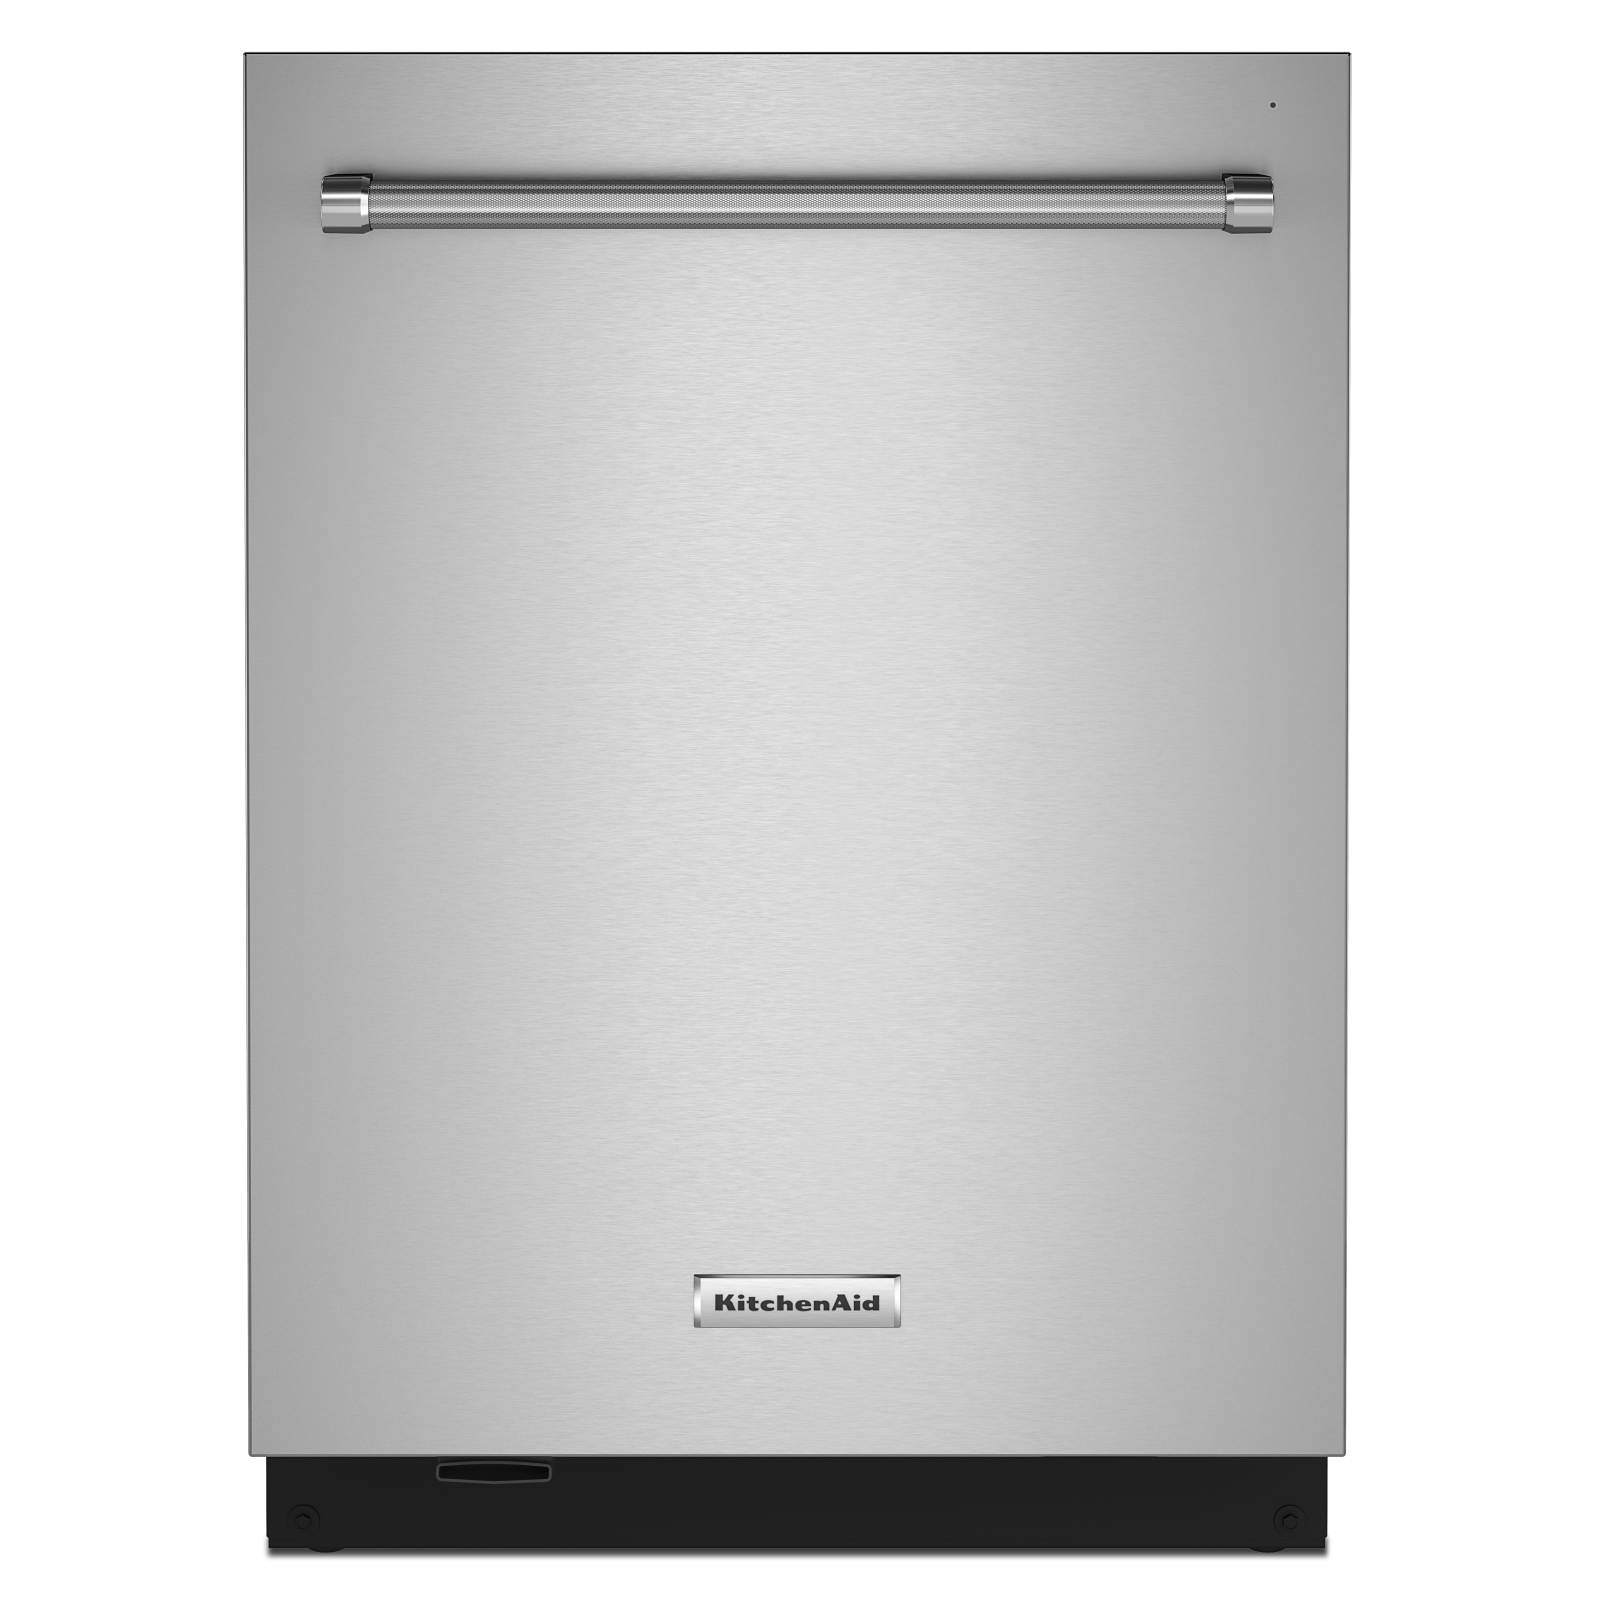 KitchenAid Dishwasher showcased by Corbeil Electro Store